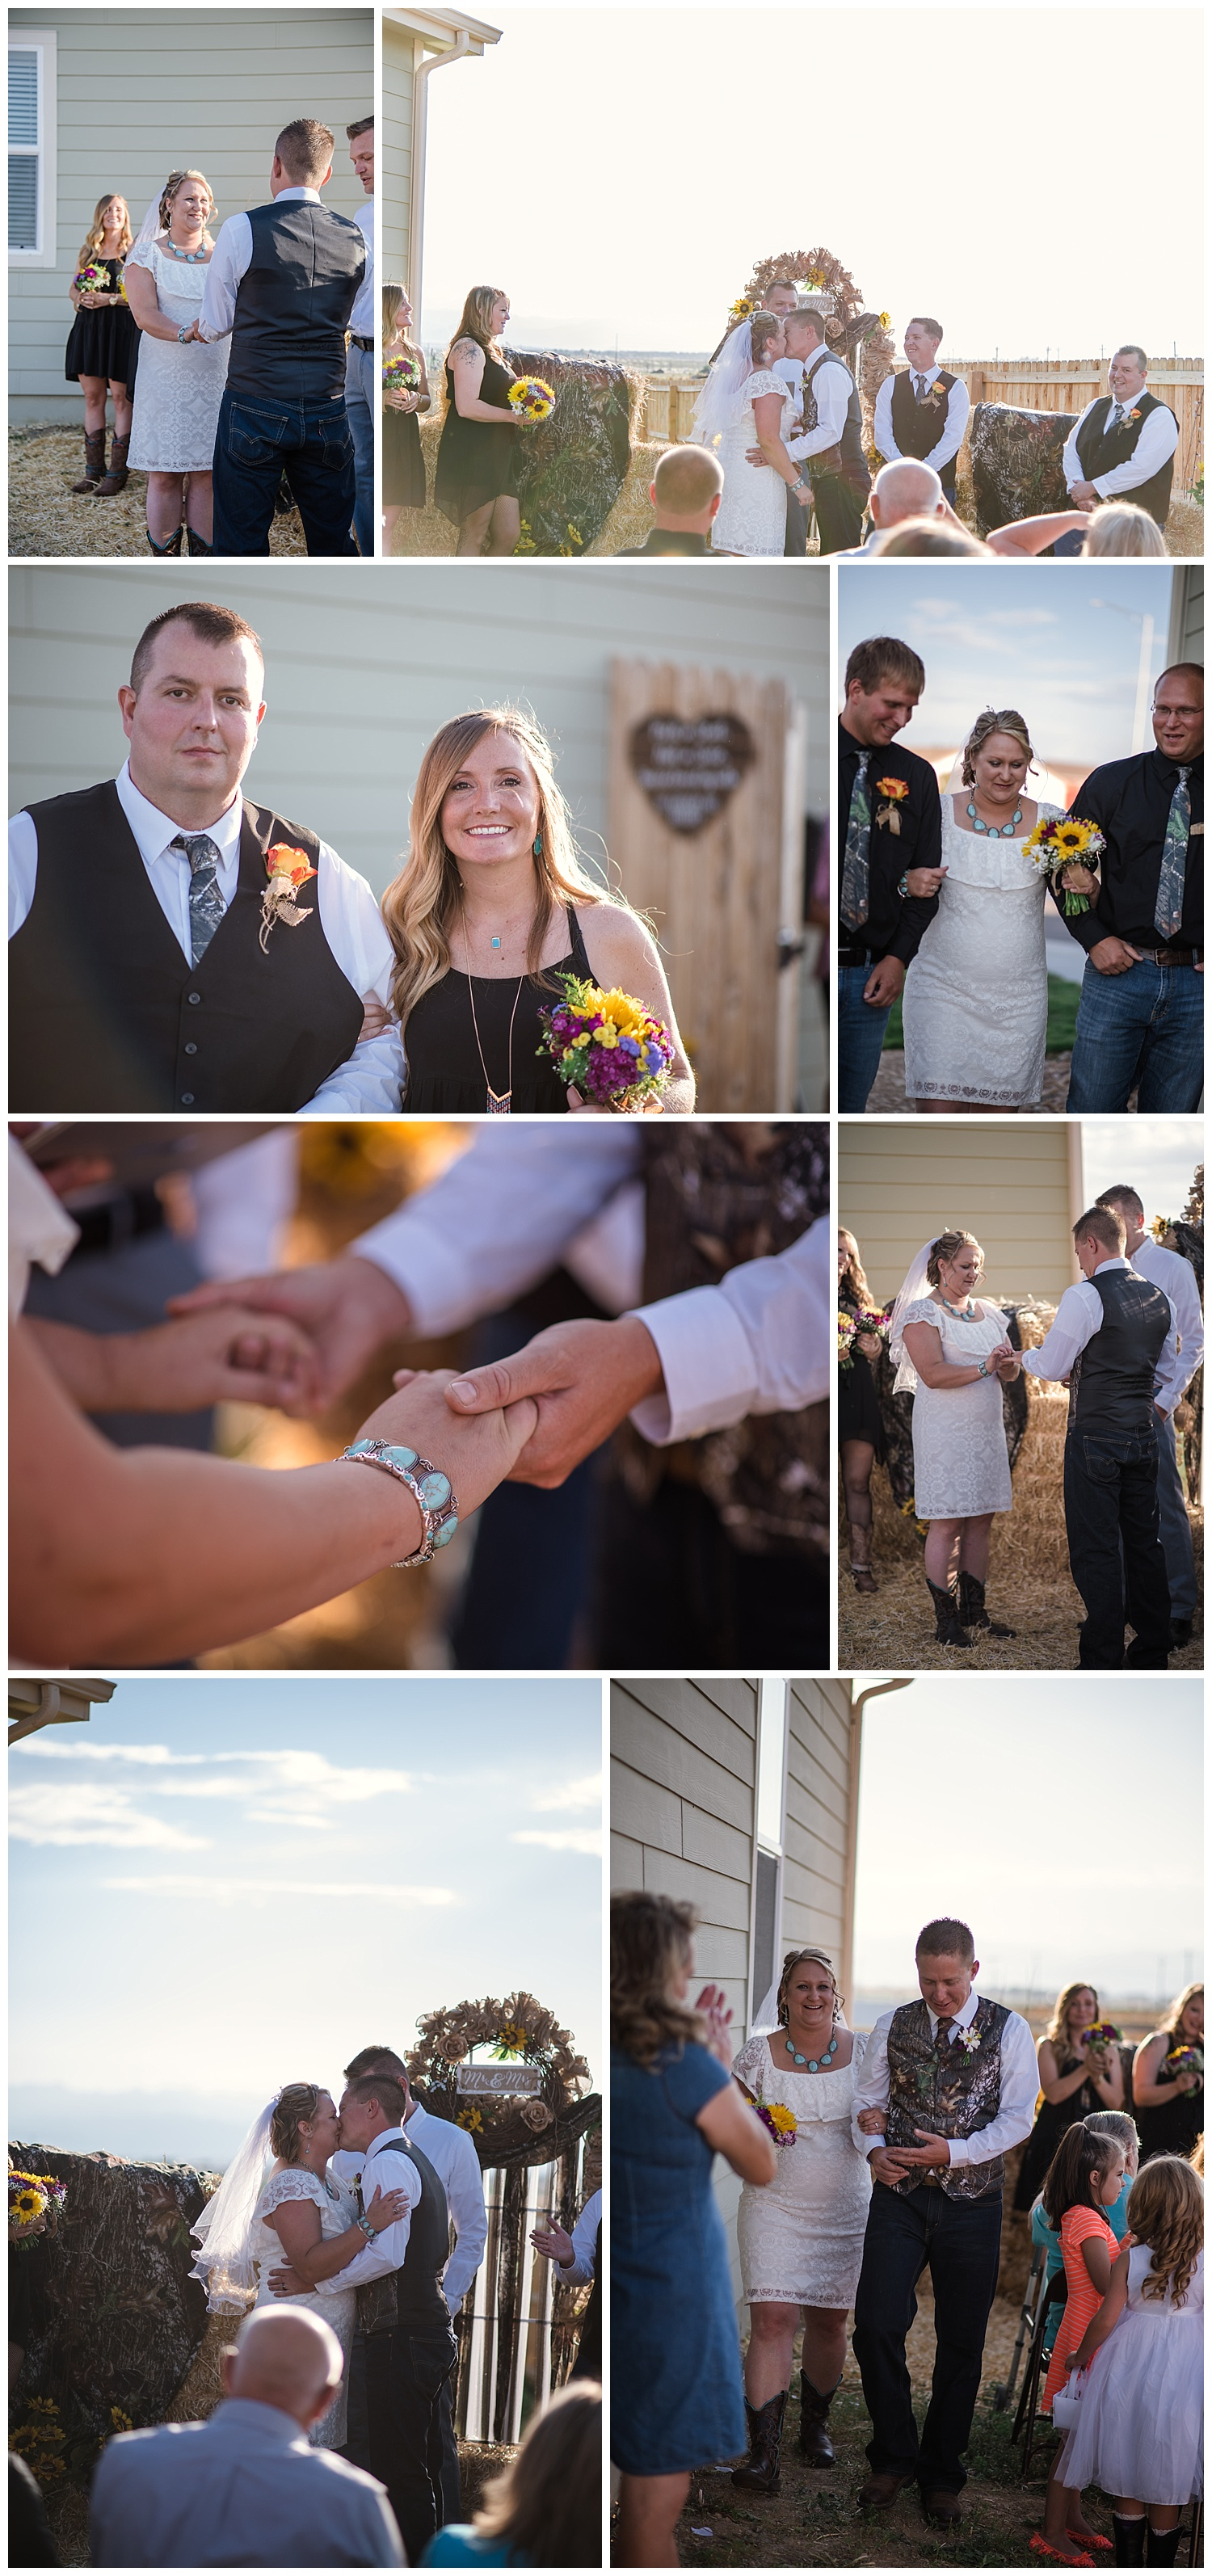 rustic wedding details, colorado wedding photographer, backyard colorado wedding, denver wedding photographer, intimate colorado wedding photographer